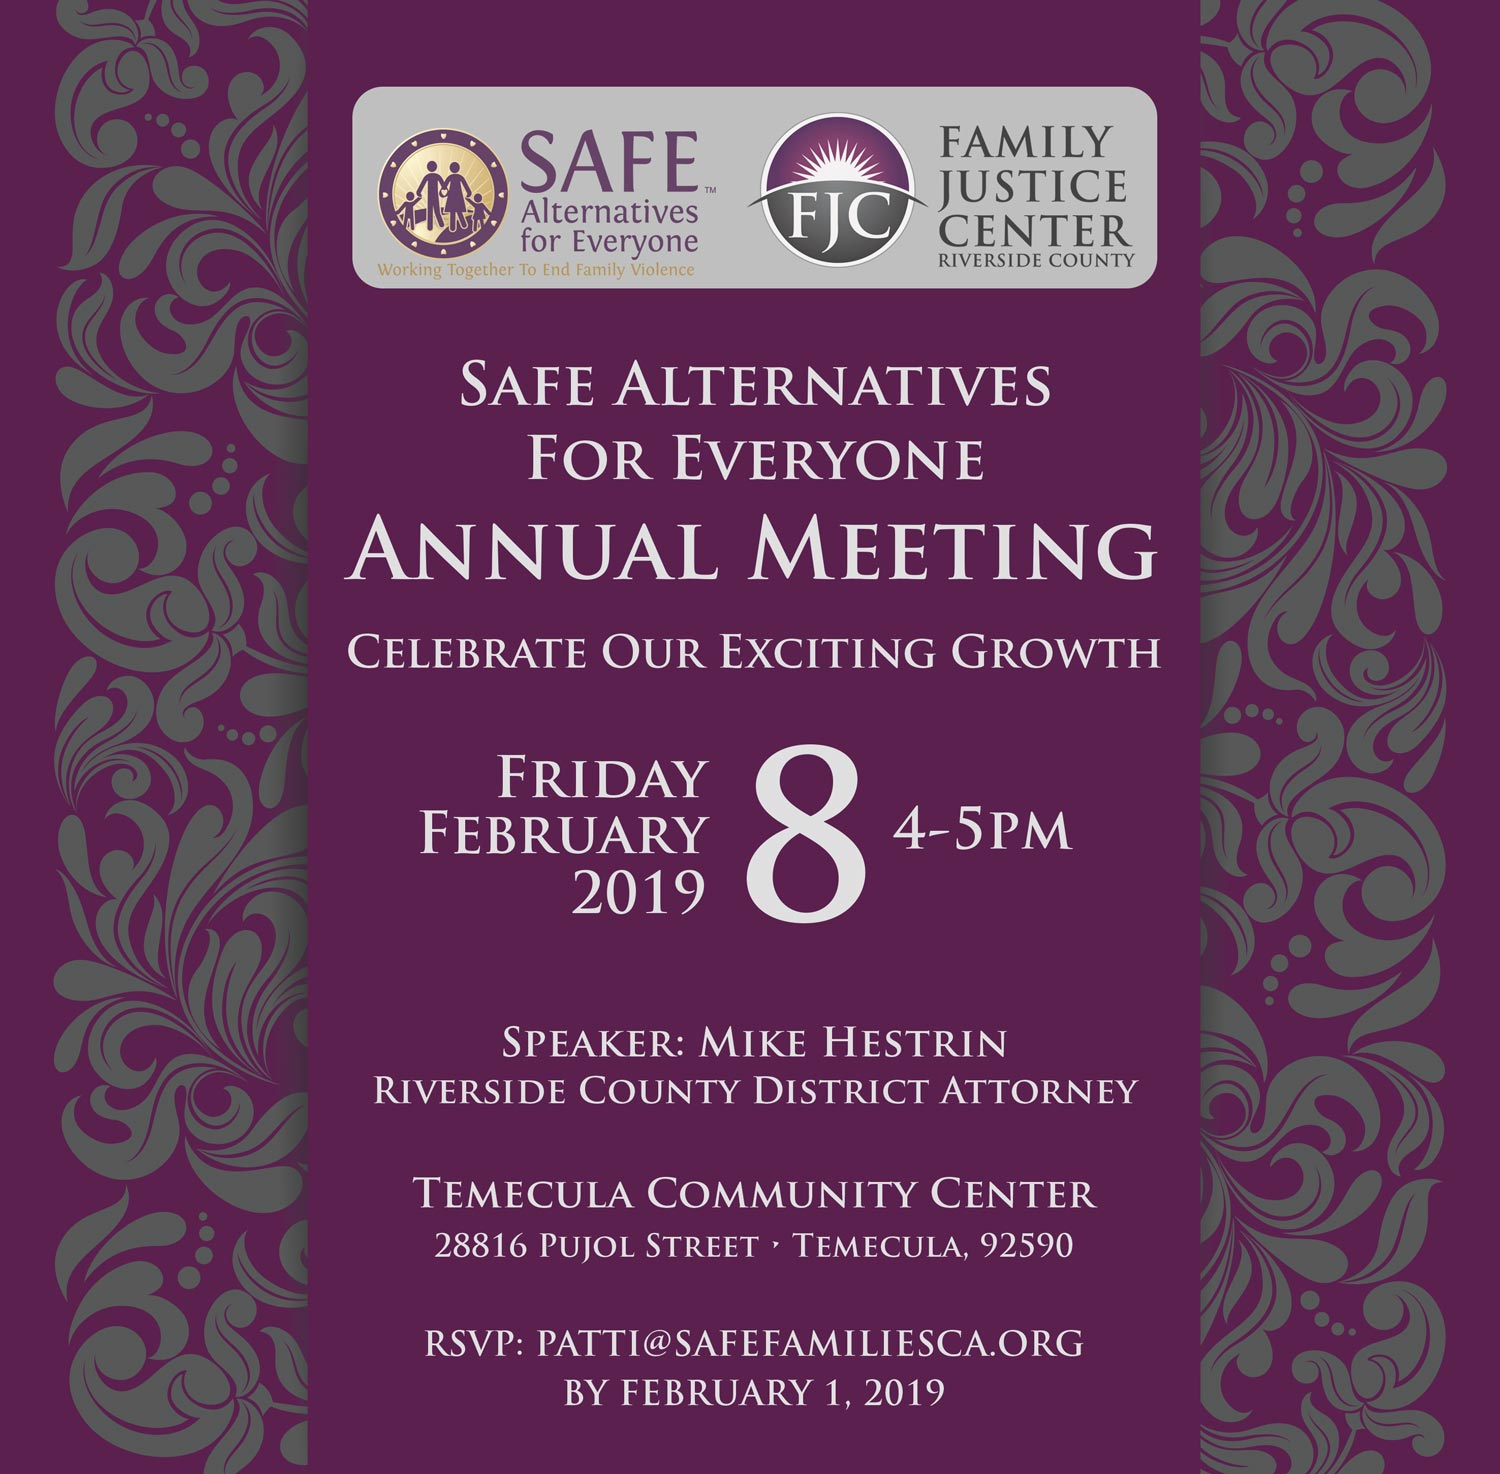 SAFE-annual meeting